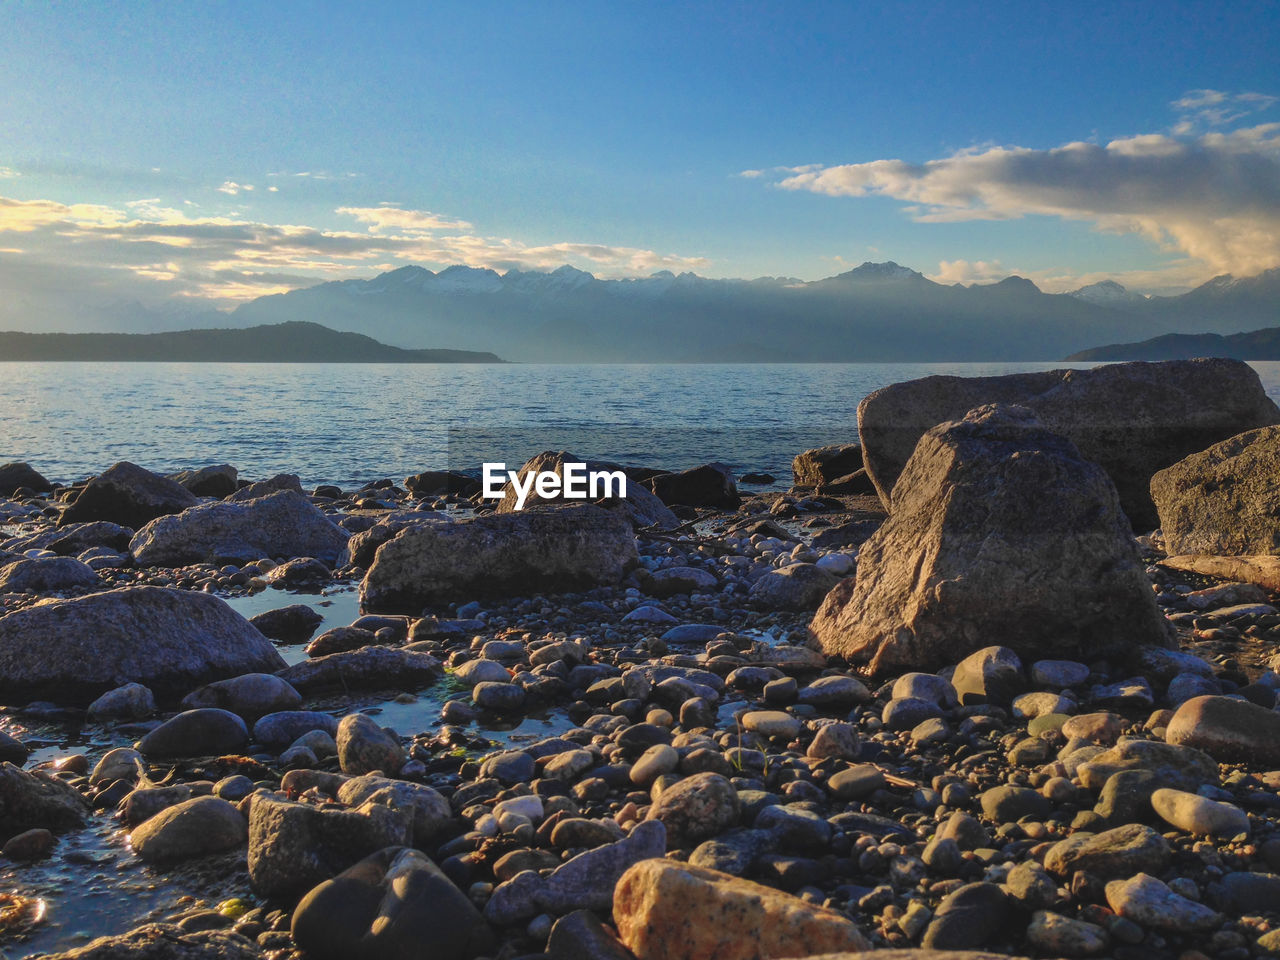 water, sky, sea, rock, solid, beauty in nature, scenics - nature, beach, cloud - sky, land, rock - object, tranquility, tranquil scene, nature, no people, idyllic, mountain, remote, non-urban scene, horizon over water, outdoors, pebble, rocky coastline